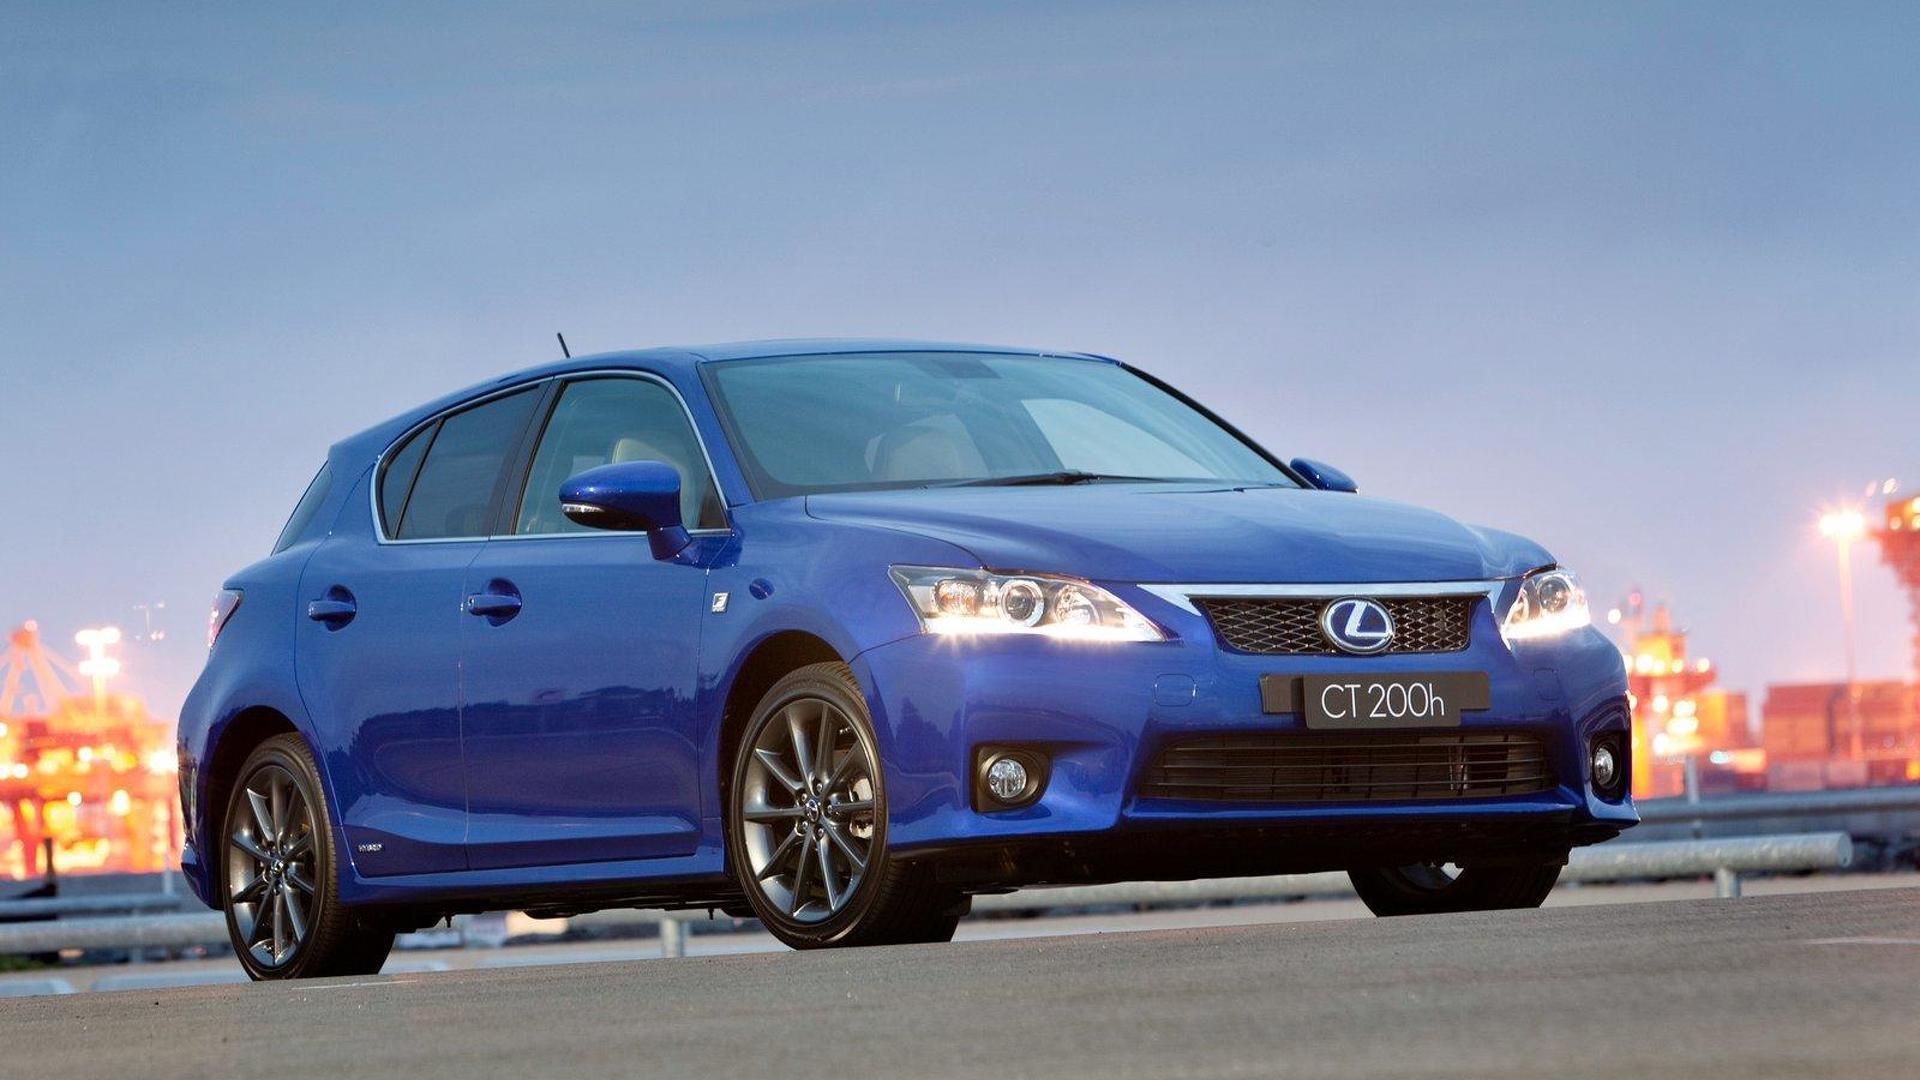 2012 Lexus CT200h gets the F-Sport package in US